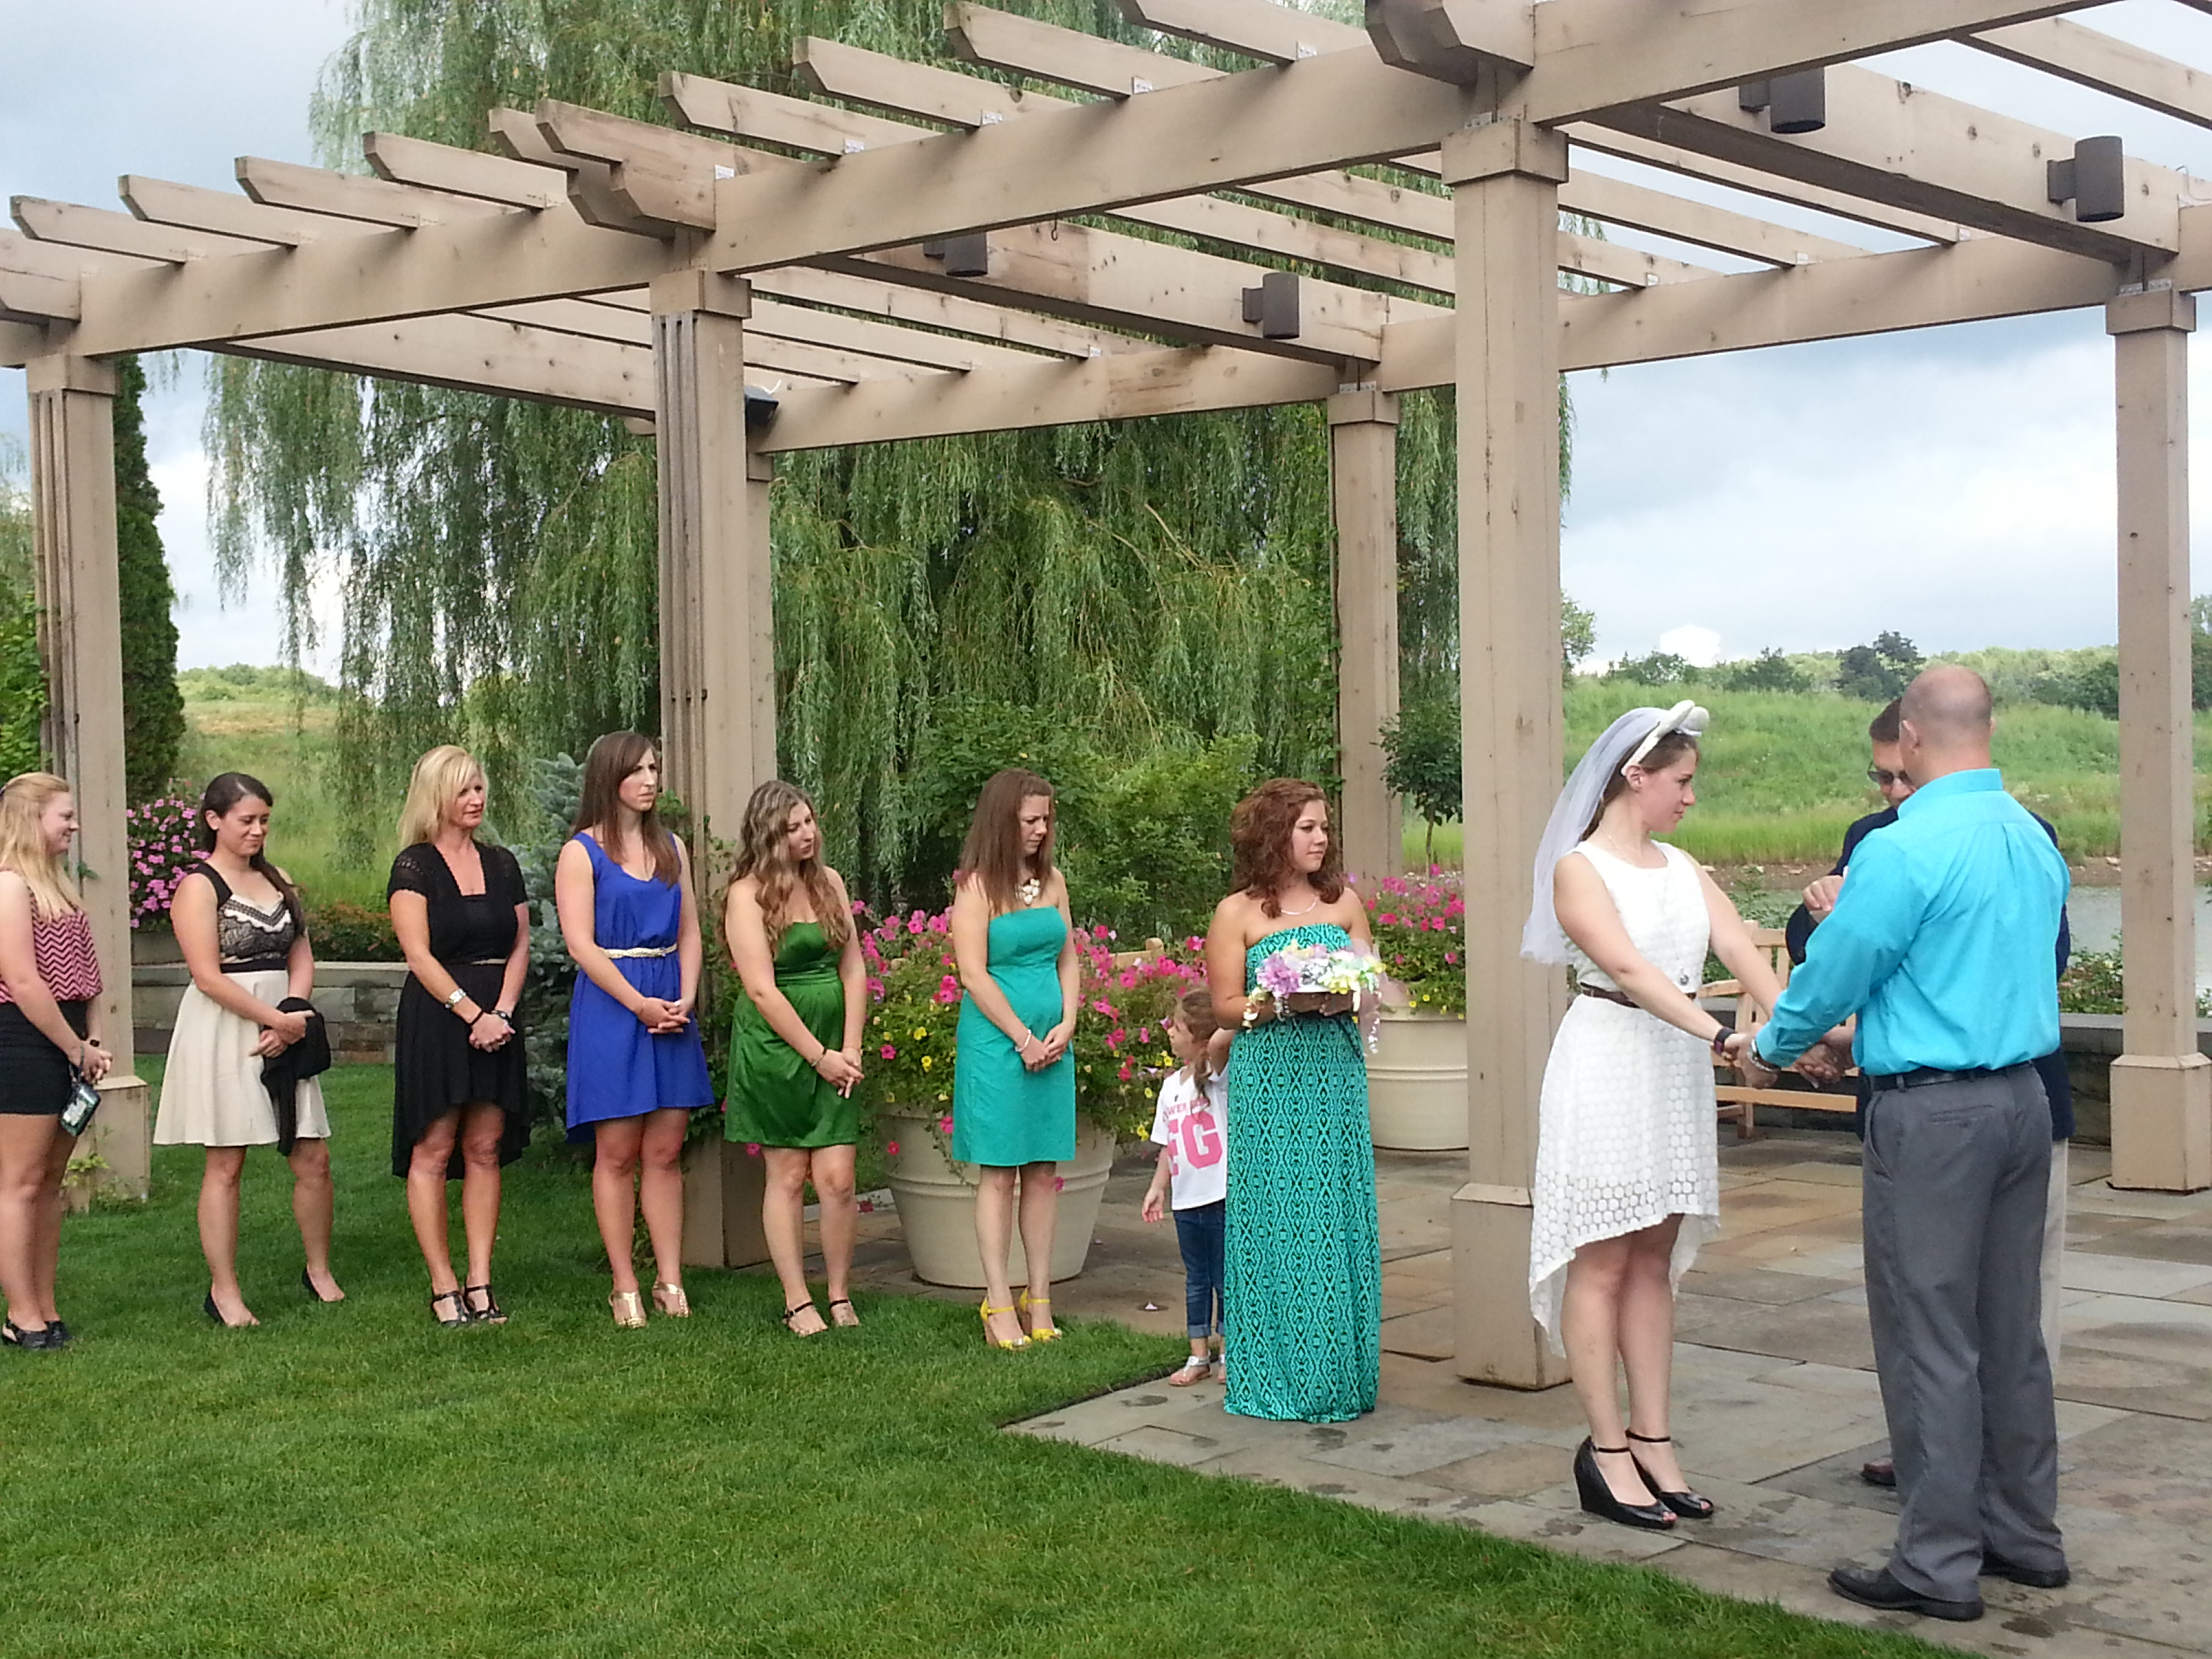 Rehearsals ormond entertainment is your celebrant unable to attend the rehearsal do you have a large wedding party would you just like to enjoy your friends family and the experience junglespirit Images